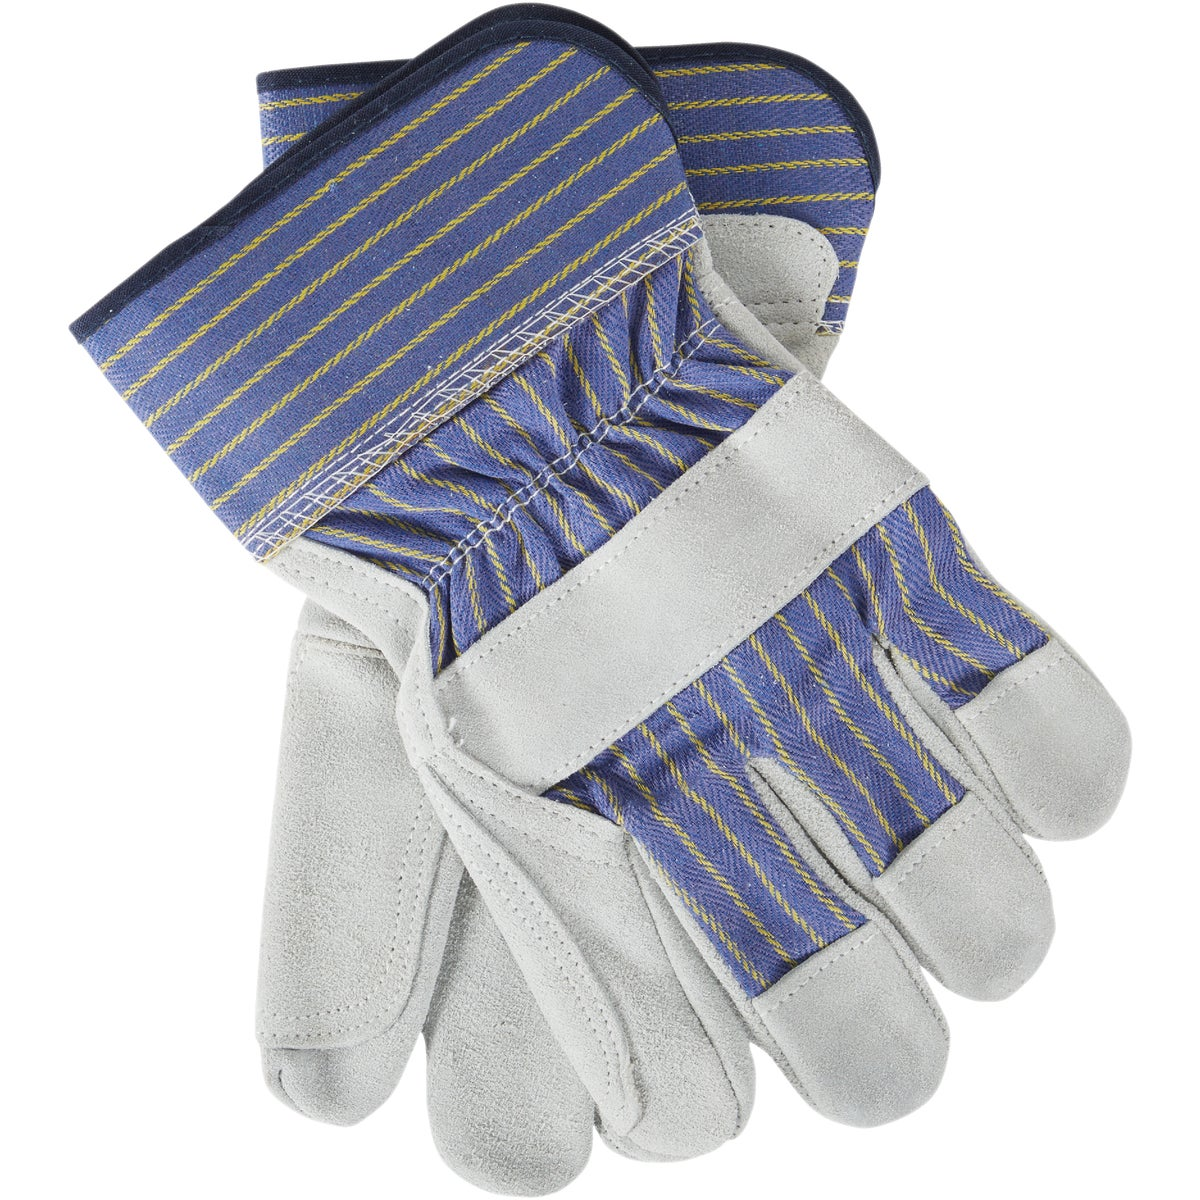 LRG DBL LETHR PALM GLOVE - 755257 by Do it Best